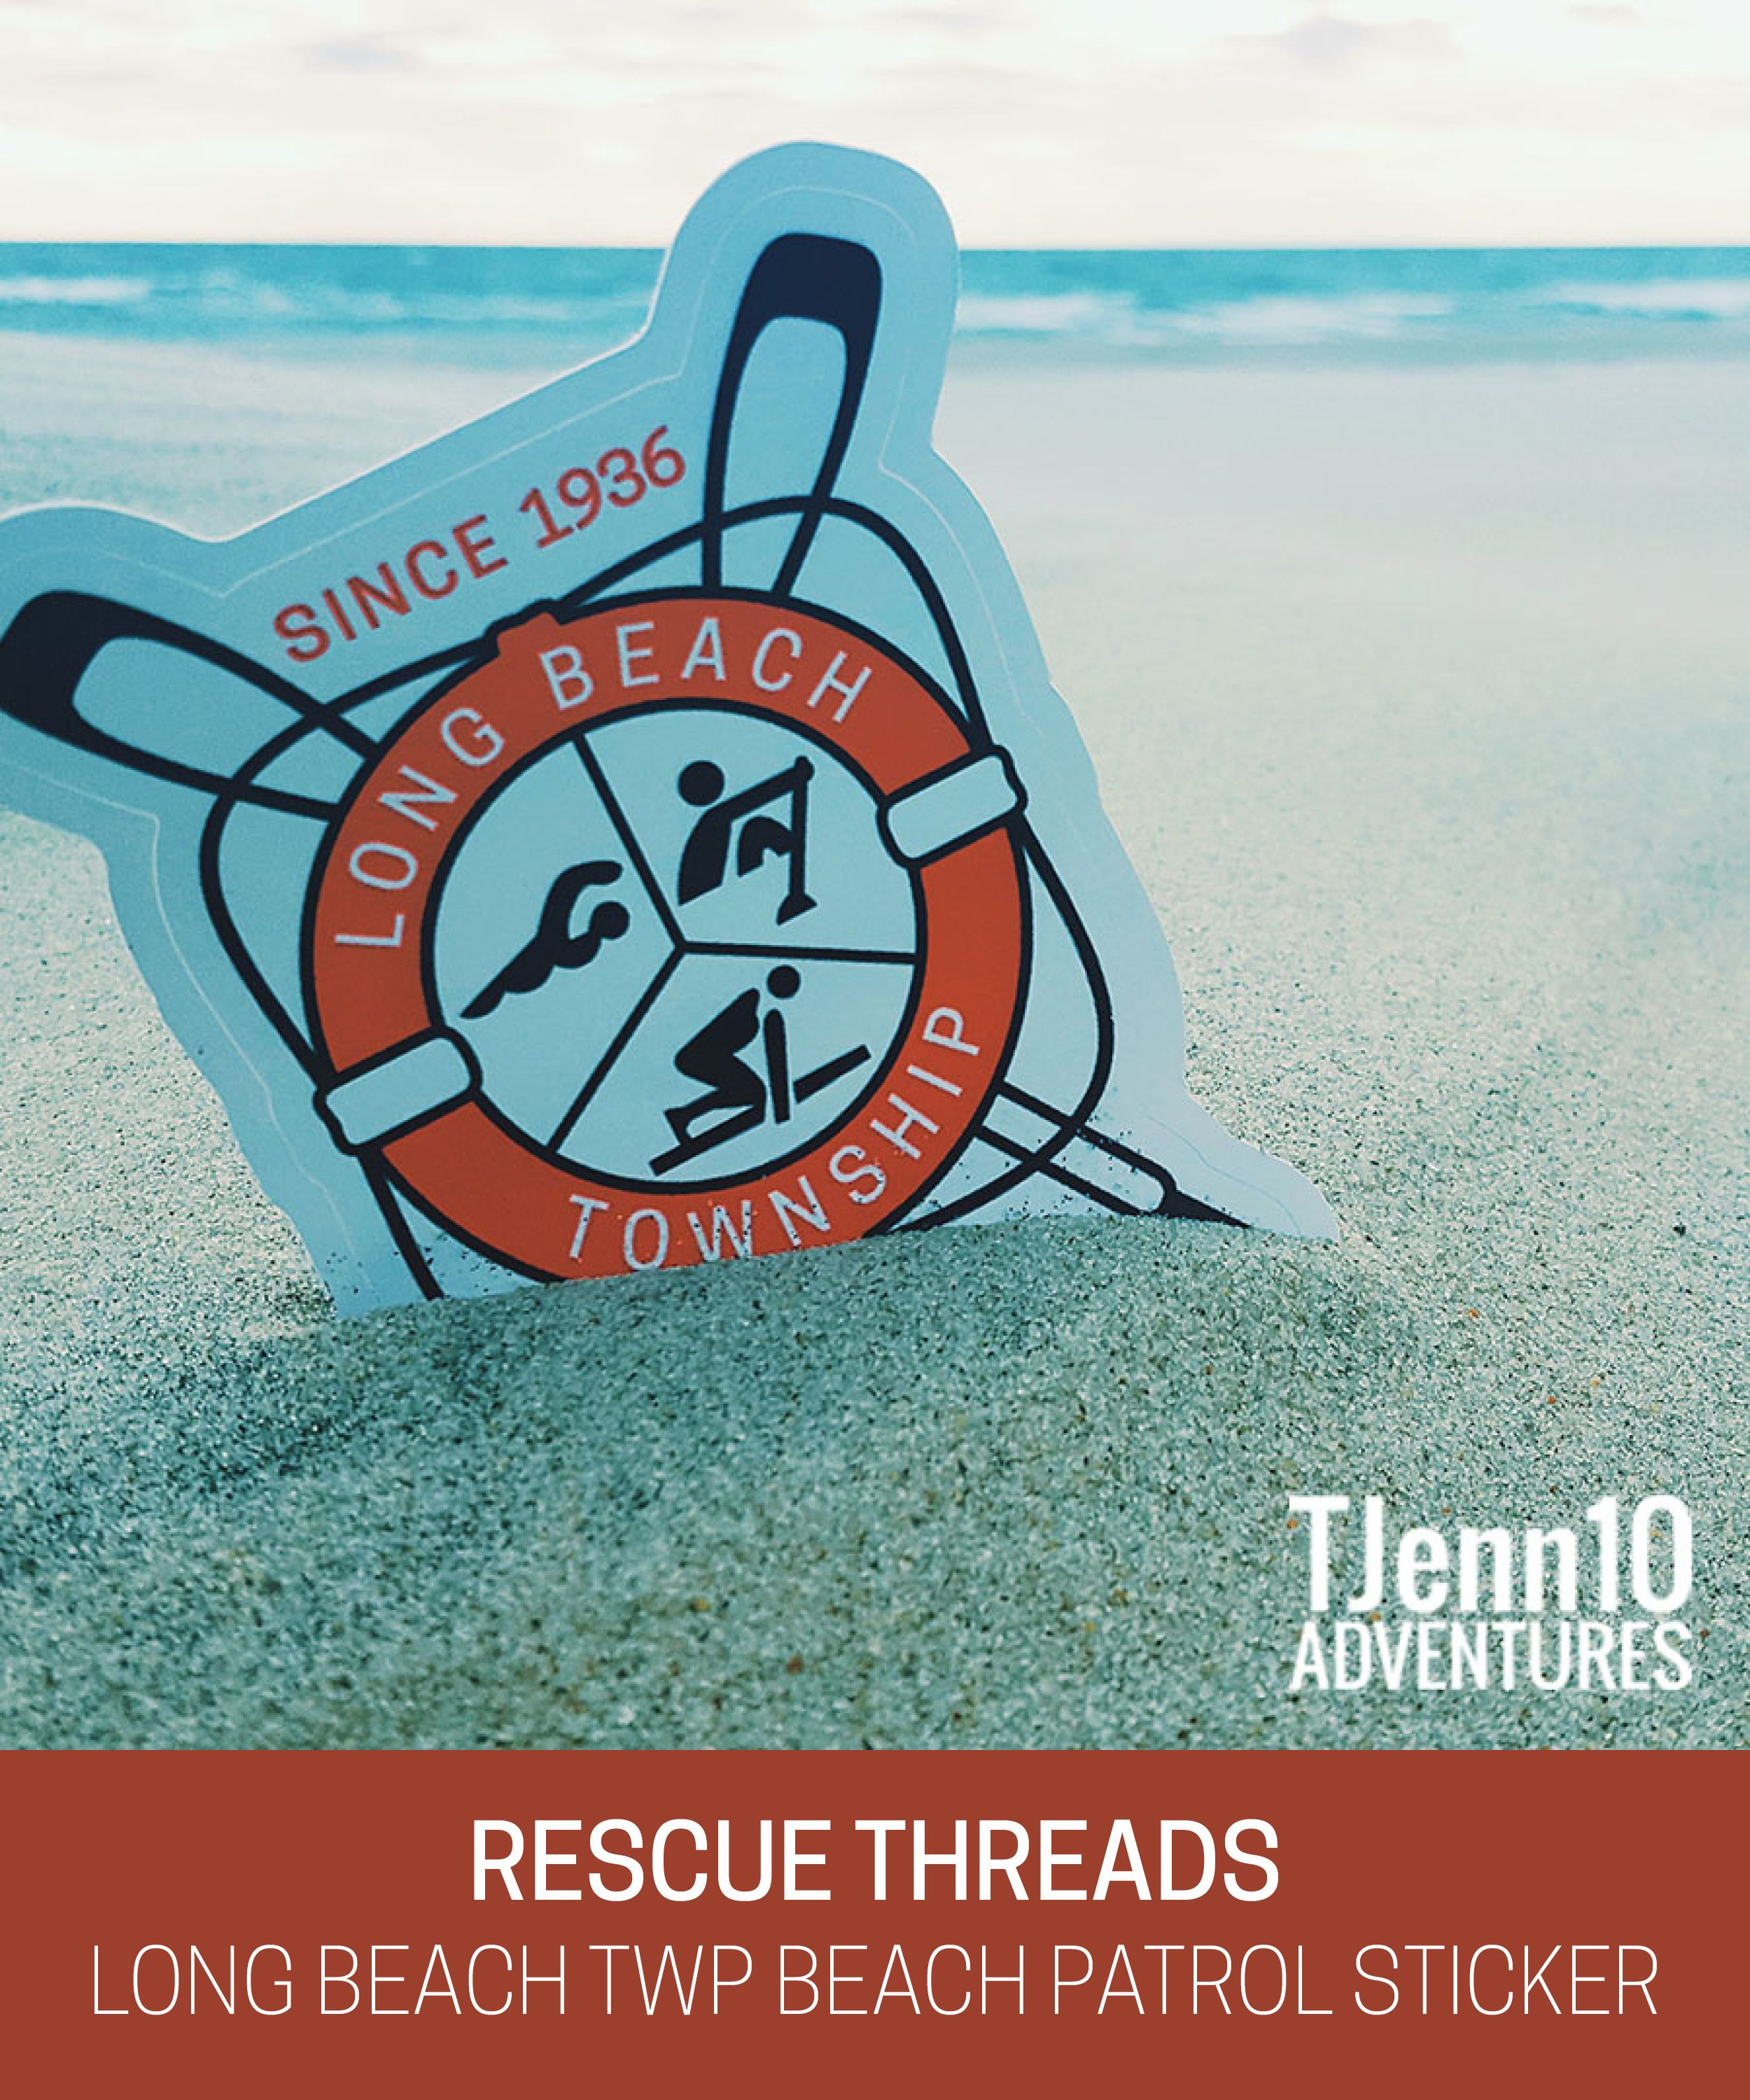 Rescue threads lbtbp sticker 2 00 making saves in style lifeguard apparel and custom designs